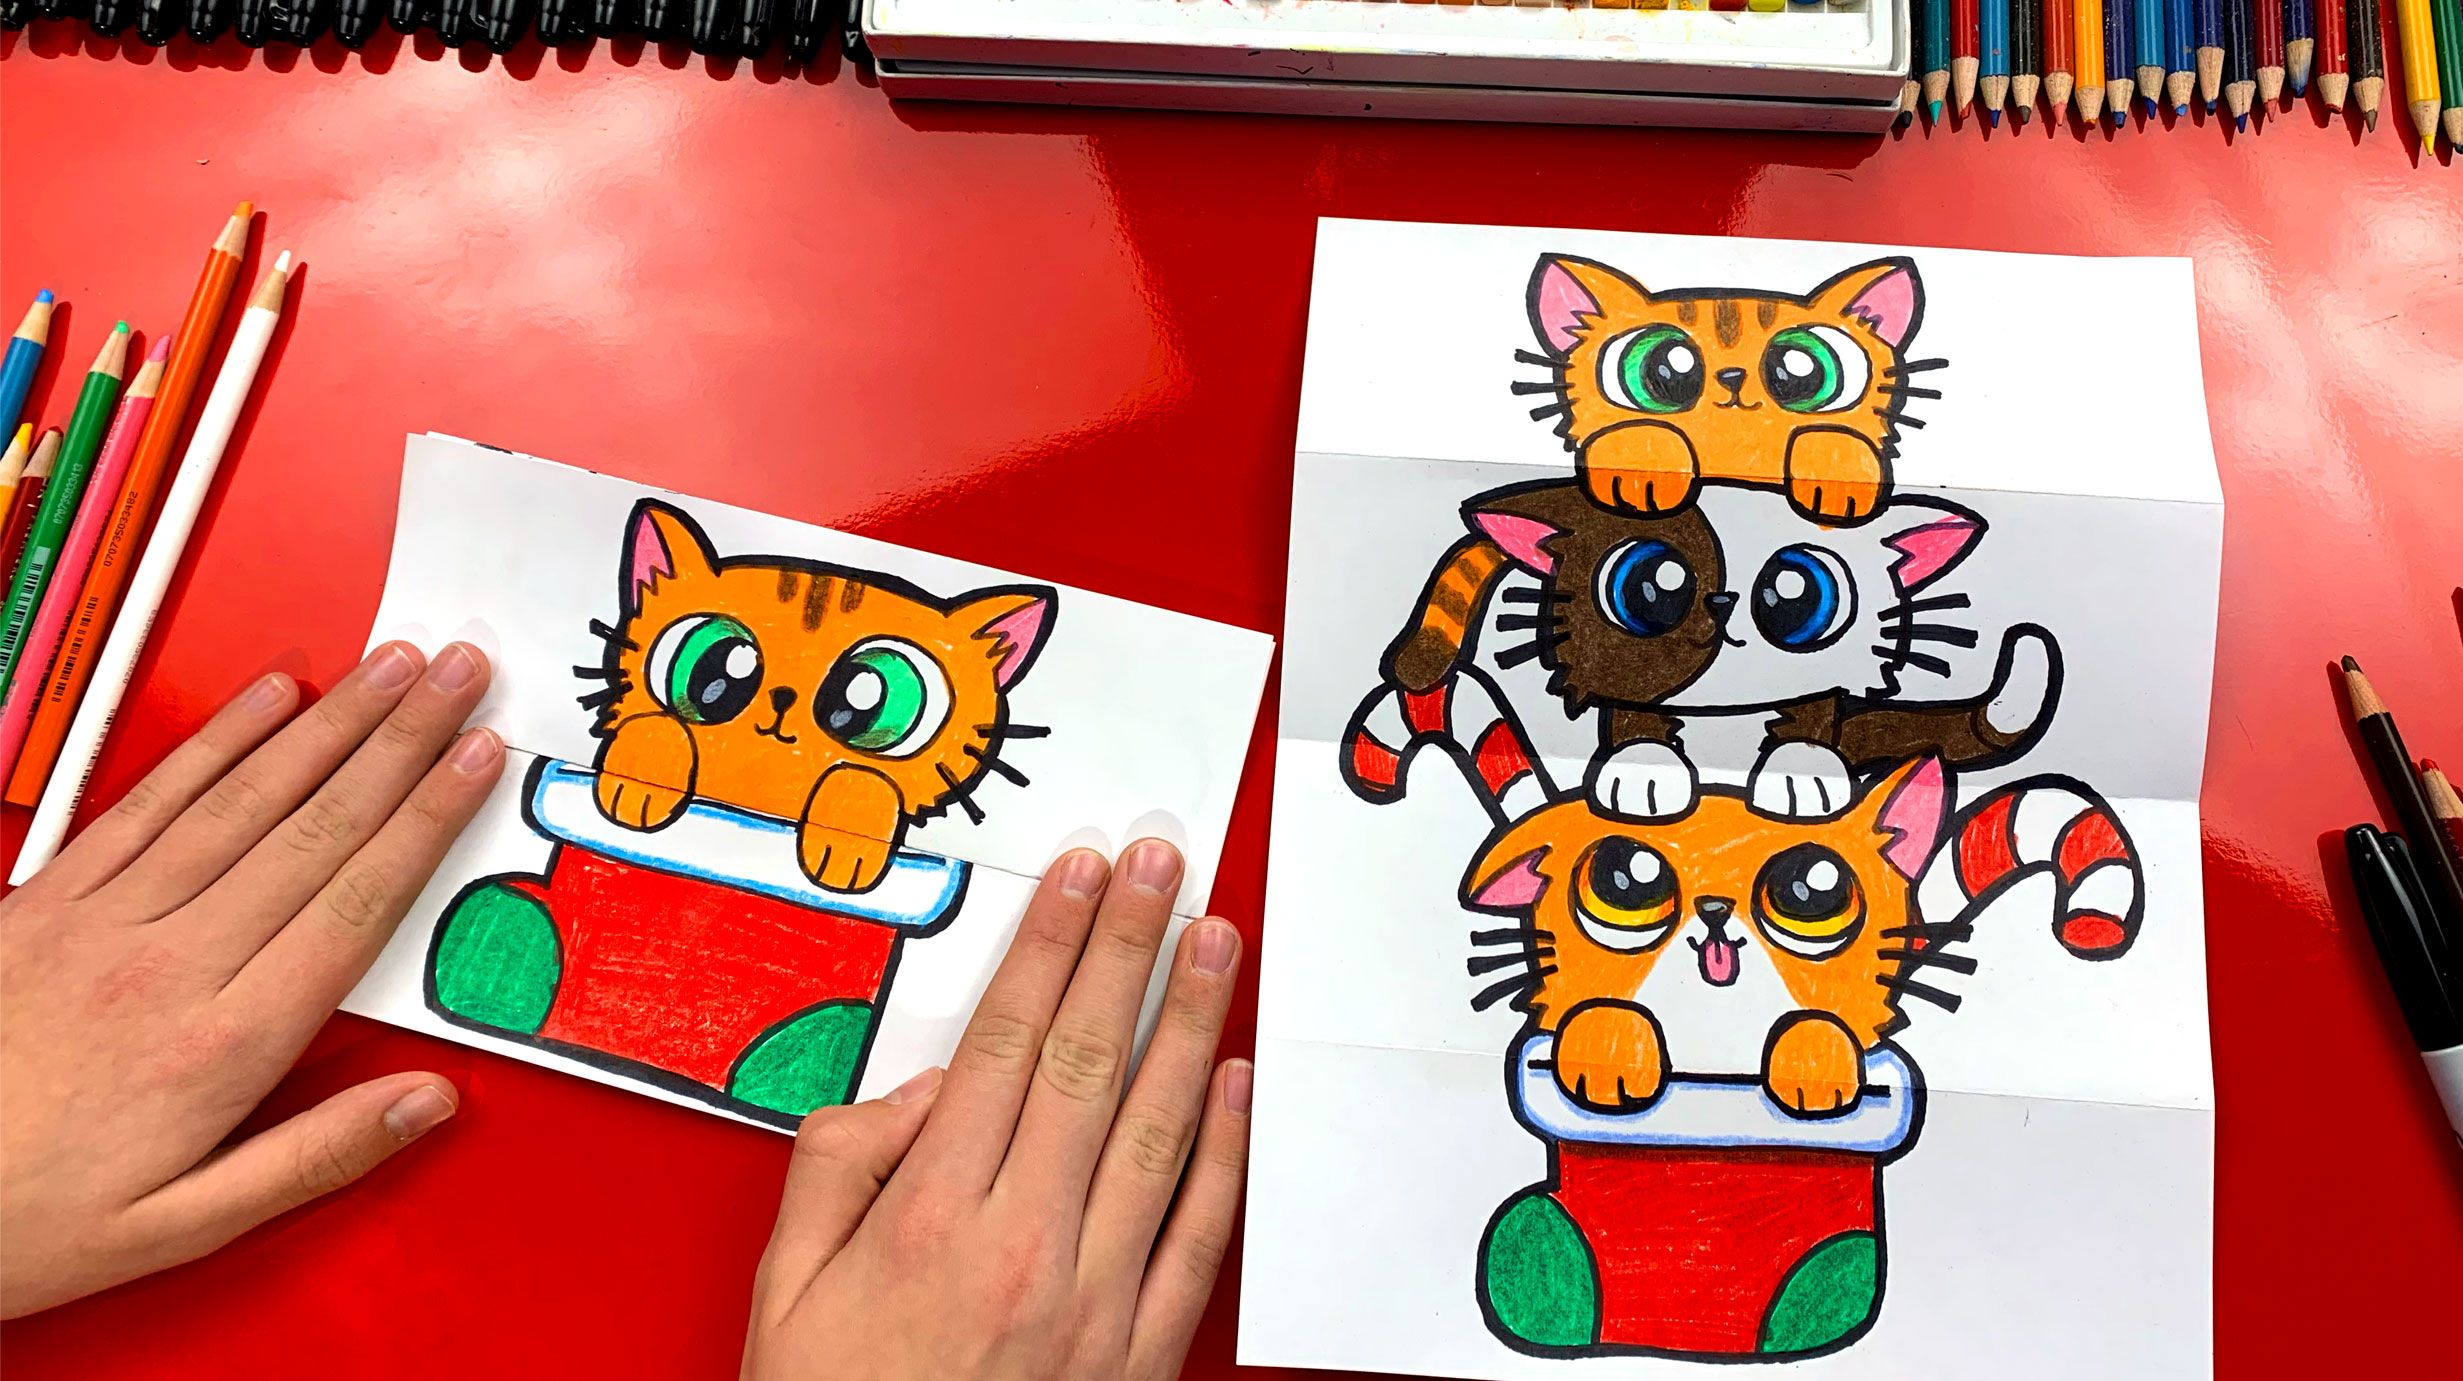 How To Draw A Christmas Kitten Stack Folding Surprise Art For Kids Hub Art For Kids Hub Art For Kids Easy Drawings For Kids